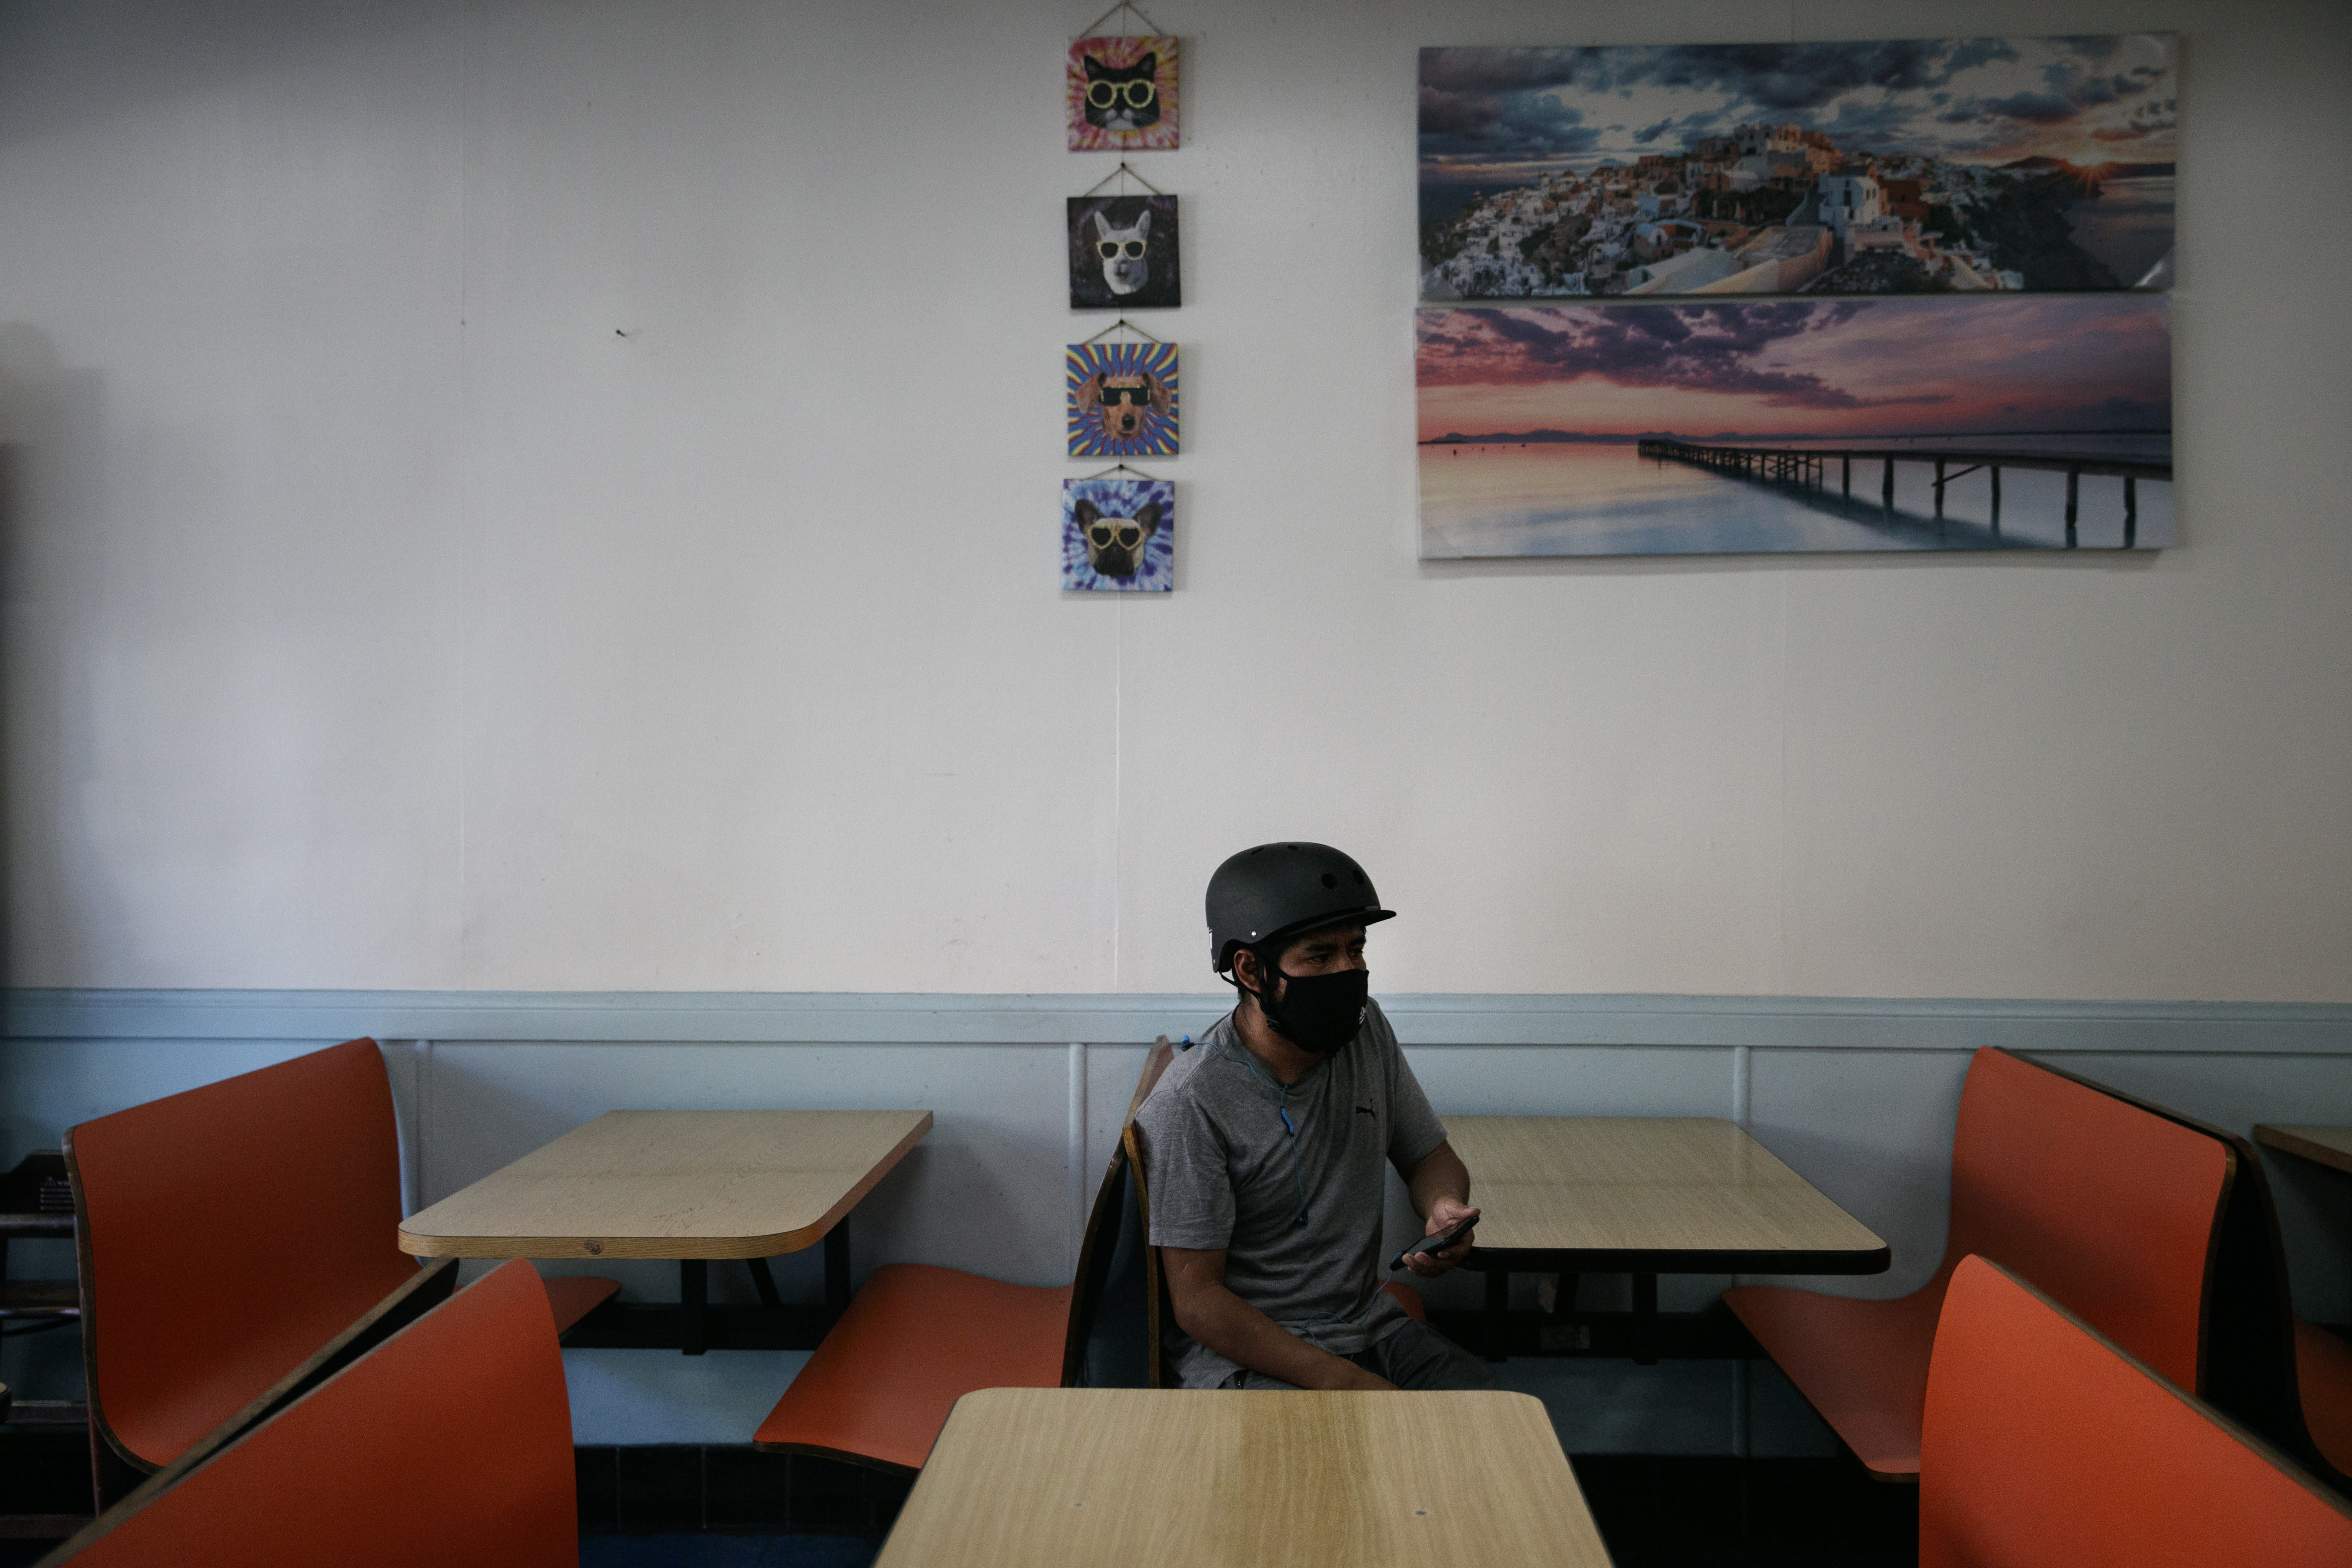 Ronald Rac waits for his order in an empty restaurant amid the coronavirus pandemic in the Westlake neighborhood of Los Angeles, Thursday, May 21, 2020. While most of California took another step forward to partly reopen in time for Memorial Day weekend, Los Angeles County didn't join the party because the number of coronavirus cases has grown at a pace that leaves it unable to meet even the new, relaxed state standards for allowing additional businesses and recreational activities. (AP Photo/Jae C. Hong)